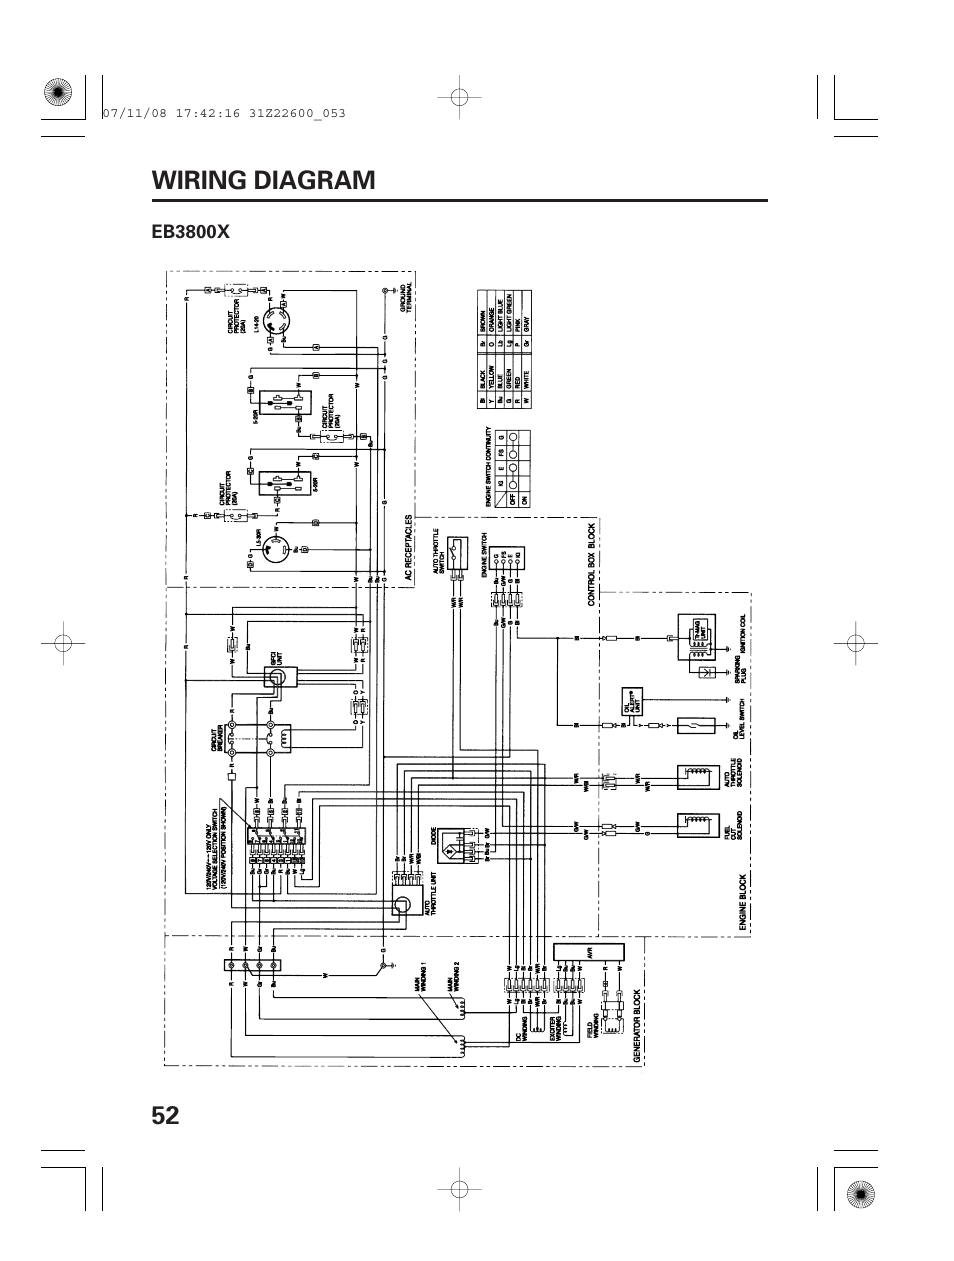 medium resolution of honda eb5000 wiring diagram